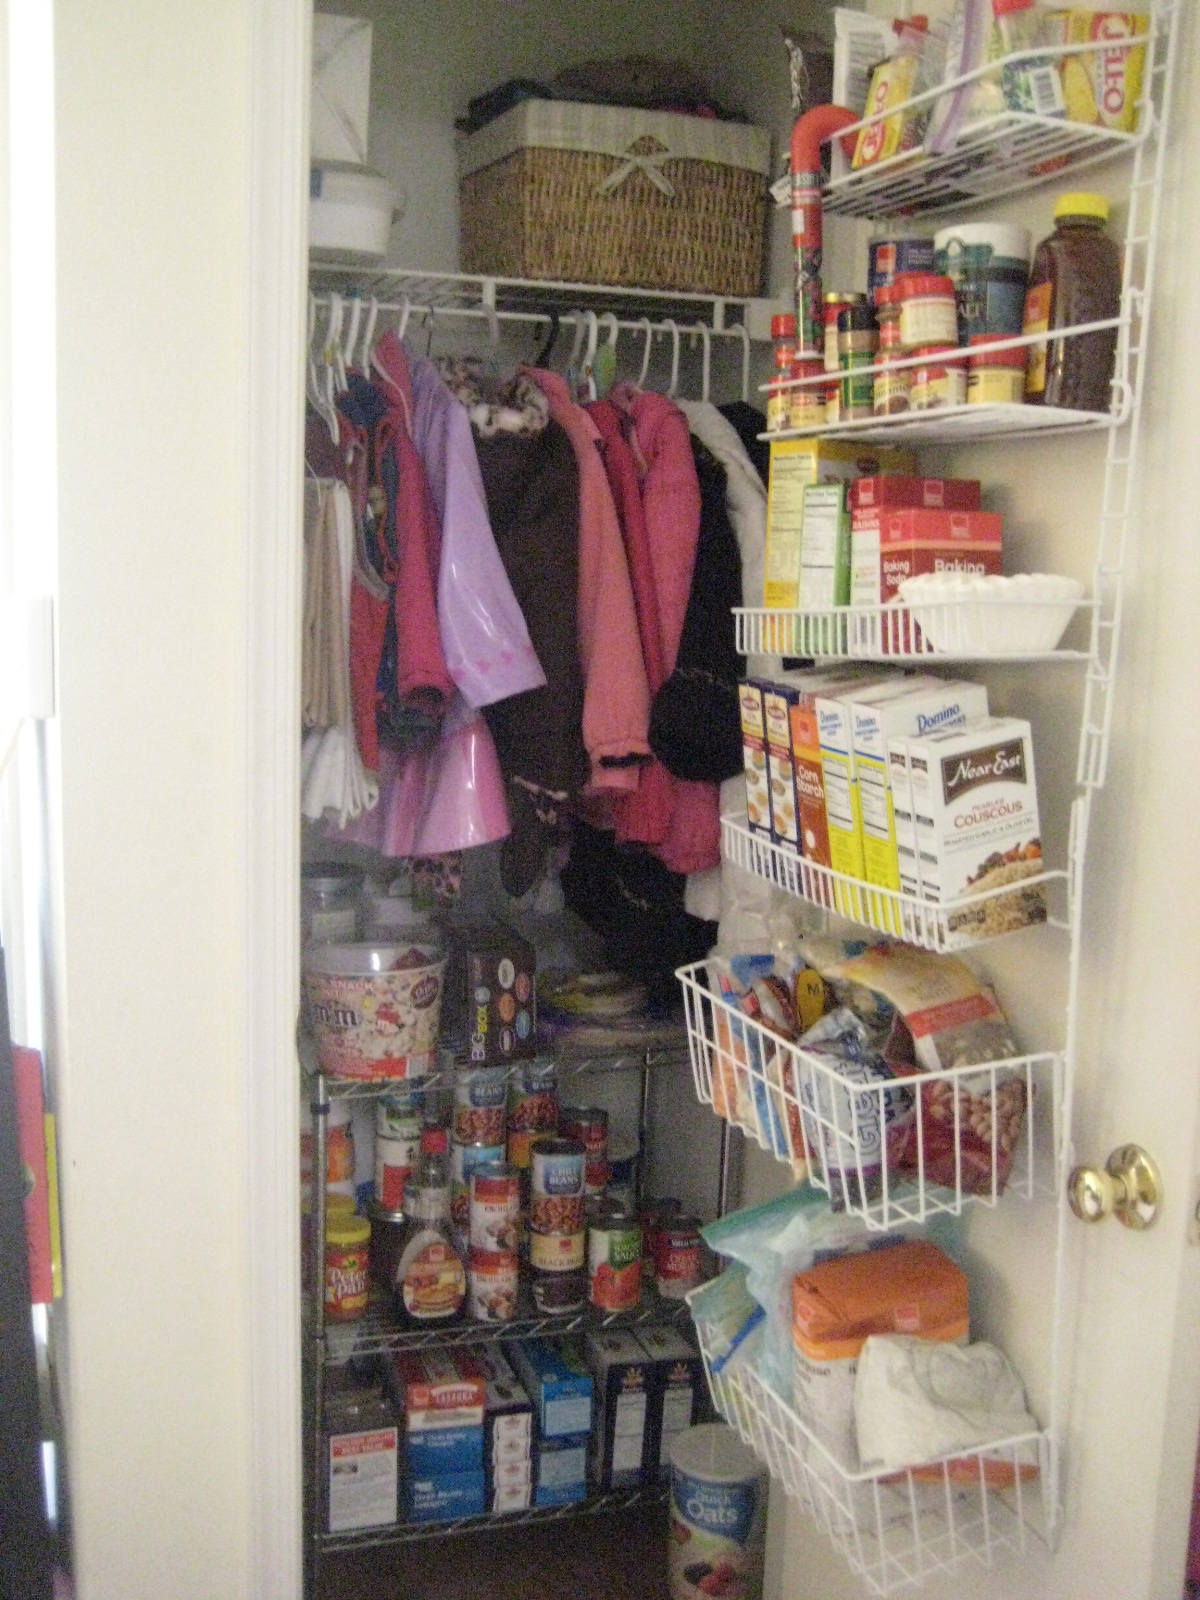 Closet Pantry Apartment Improv Coat Closet And Pantry Small Steps Big Picture